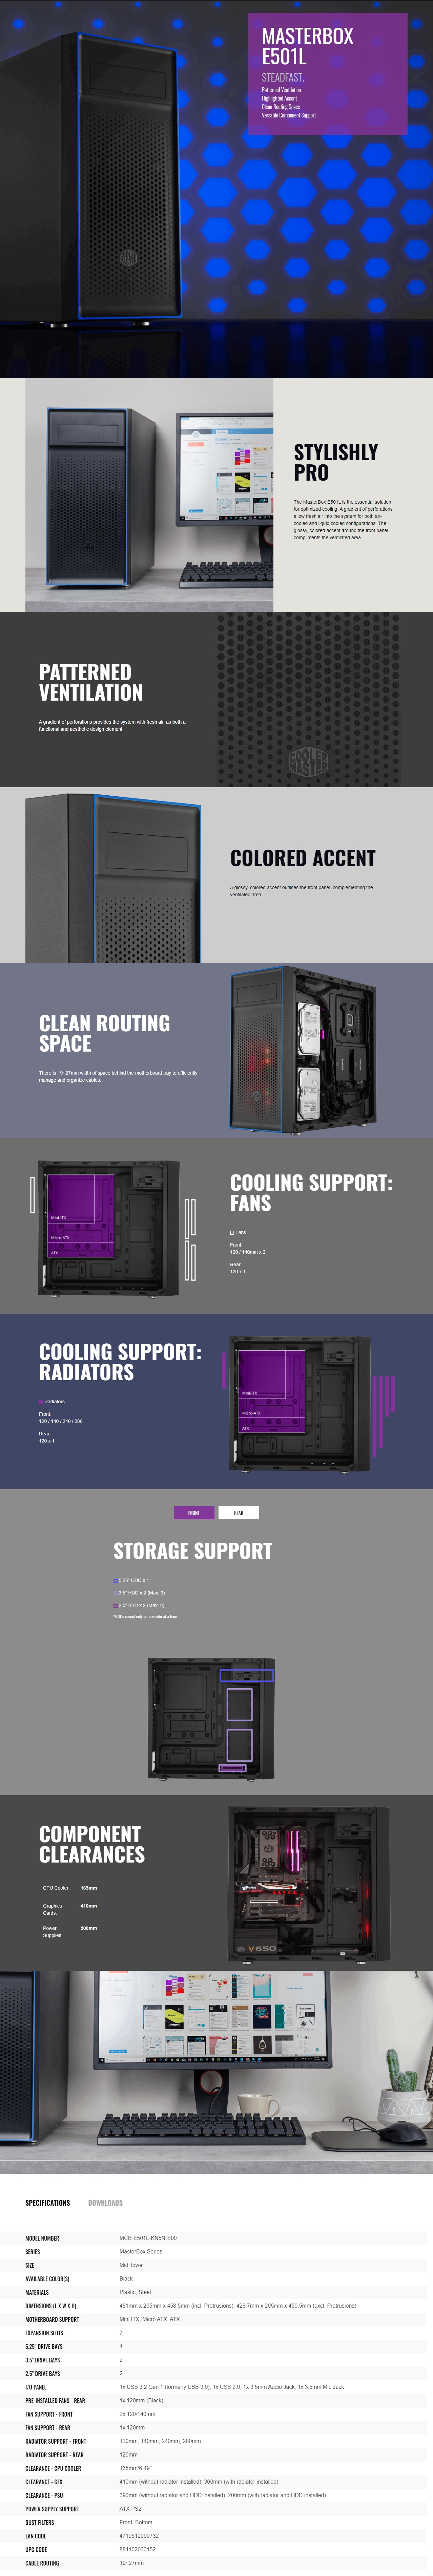 A large marketing image providing additional information about the product Cooler Master MasterBox E501L Mid Tower Case w/500W Power Supply - Additional alt info not provided